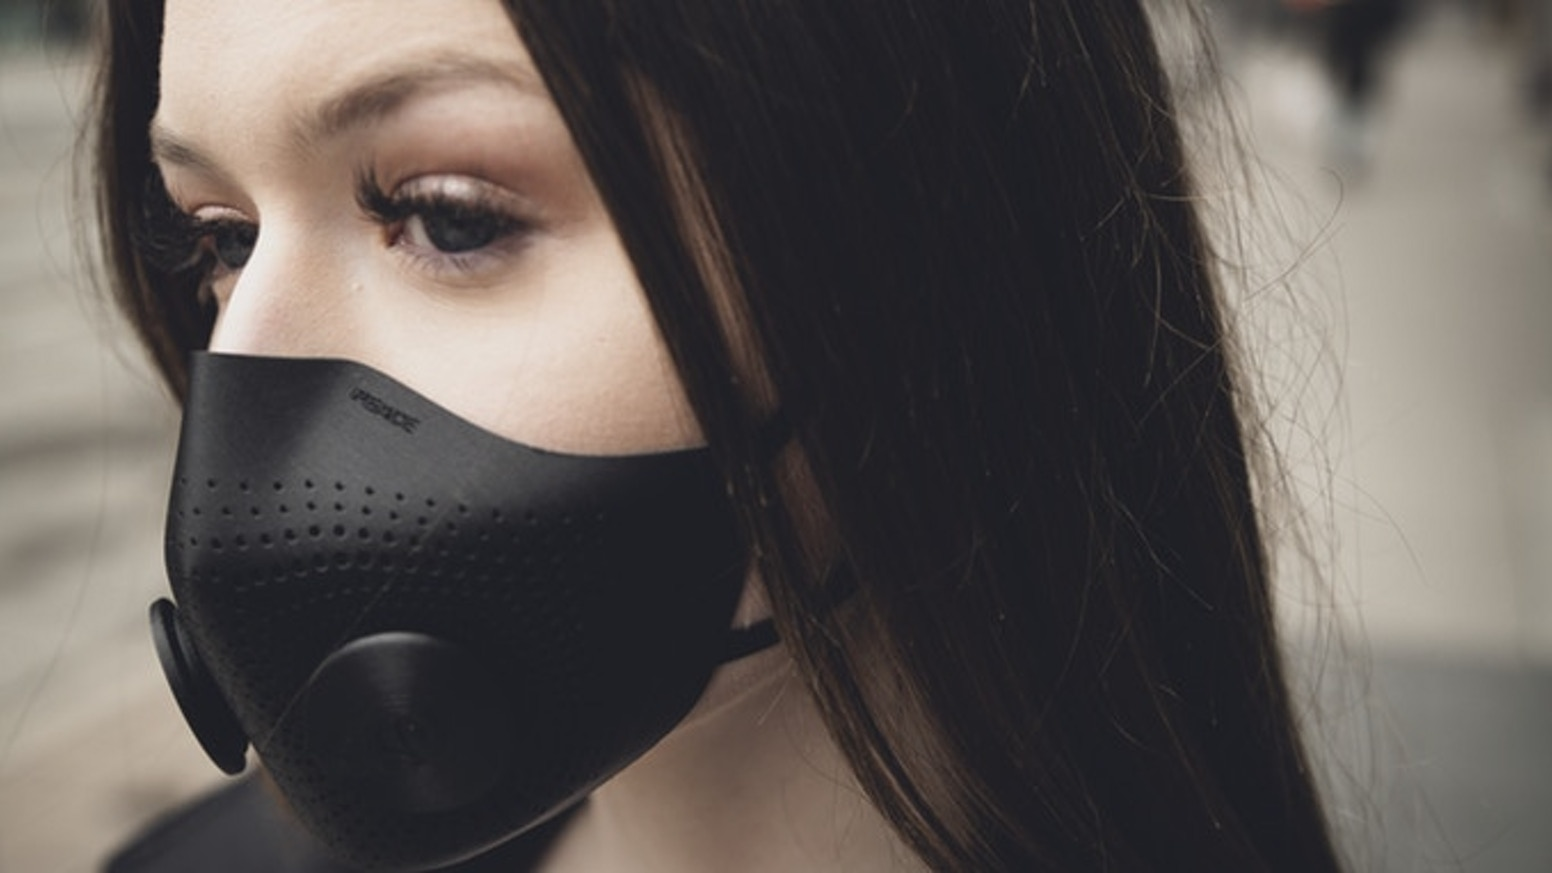 A Bespoke mask that's tailored to fit you by AI & 3D Printing.